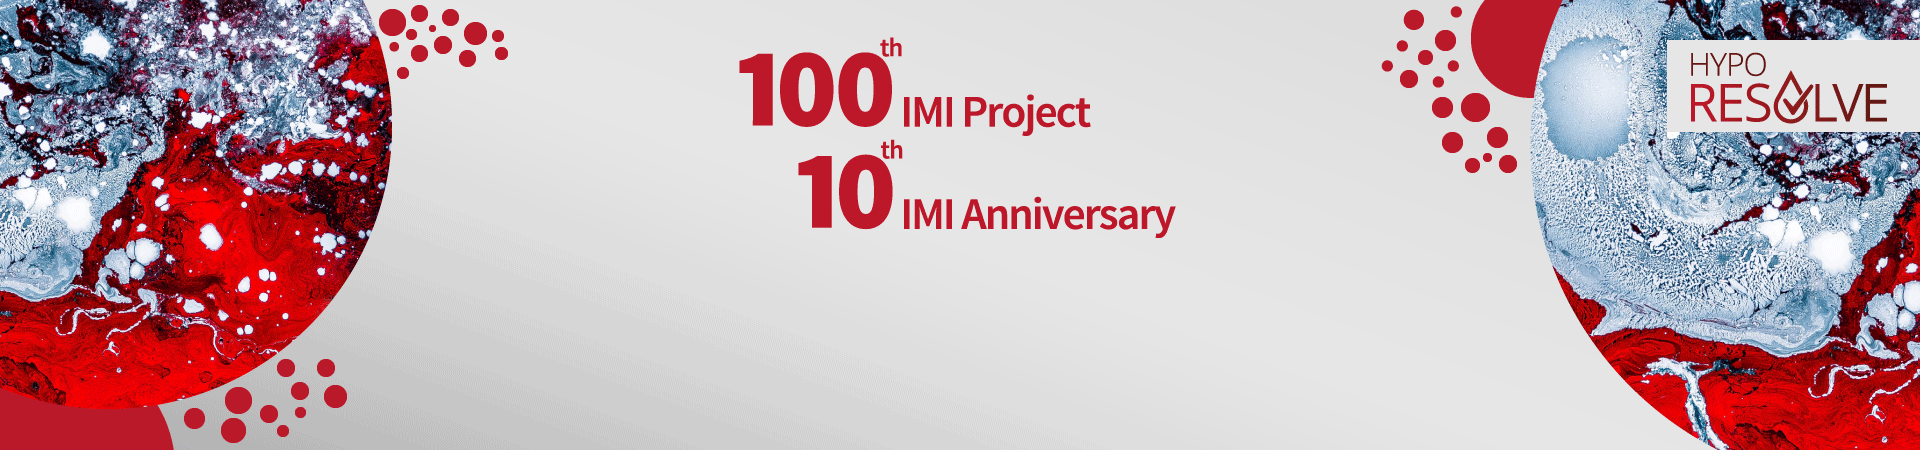 Diabetes and Hypoglycaemia: Start of Activities in 100. IMI-Project Hypo-RESOLVE